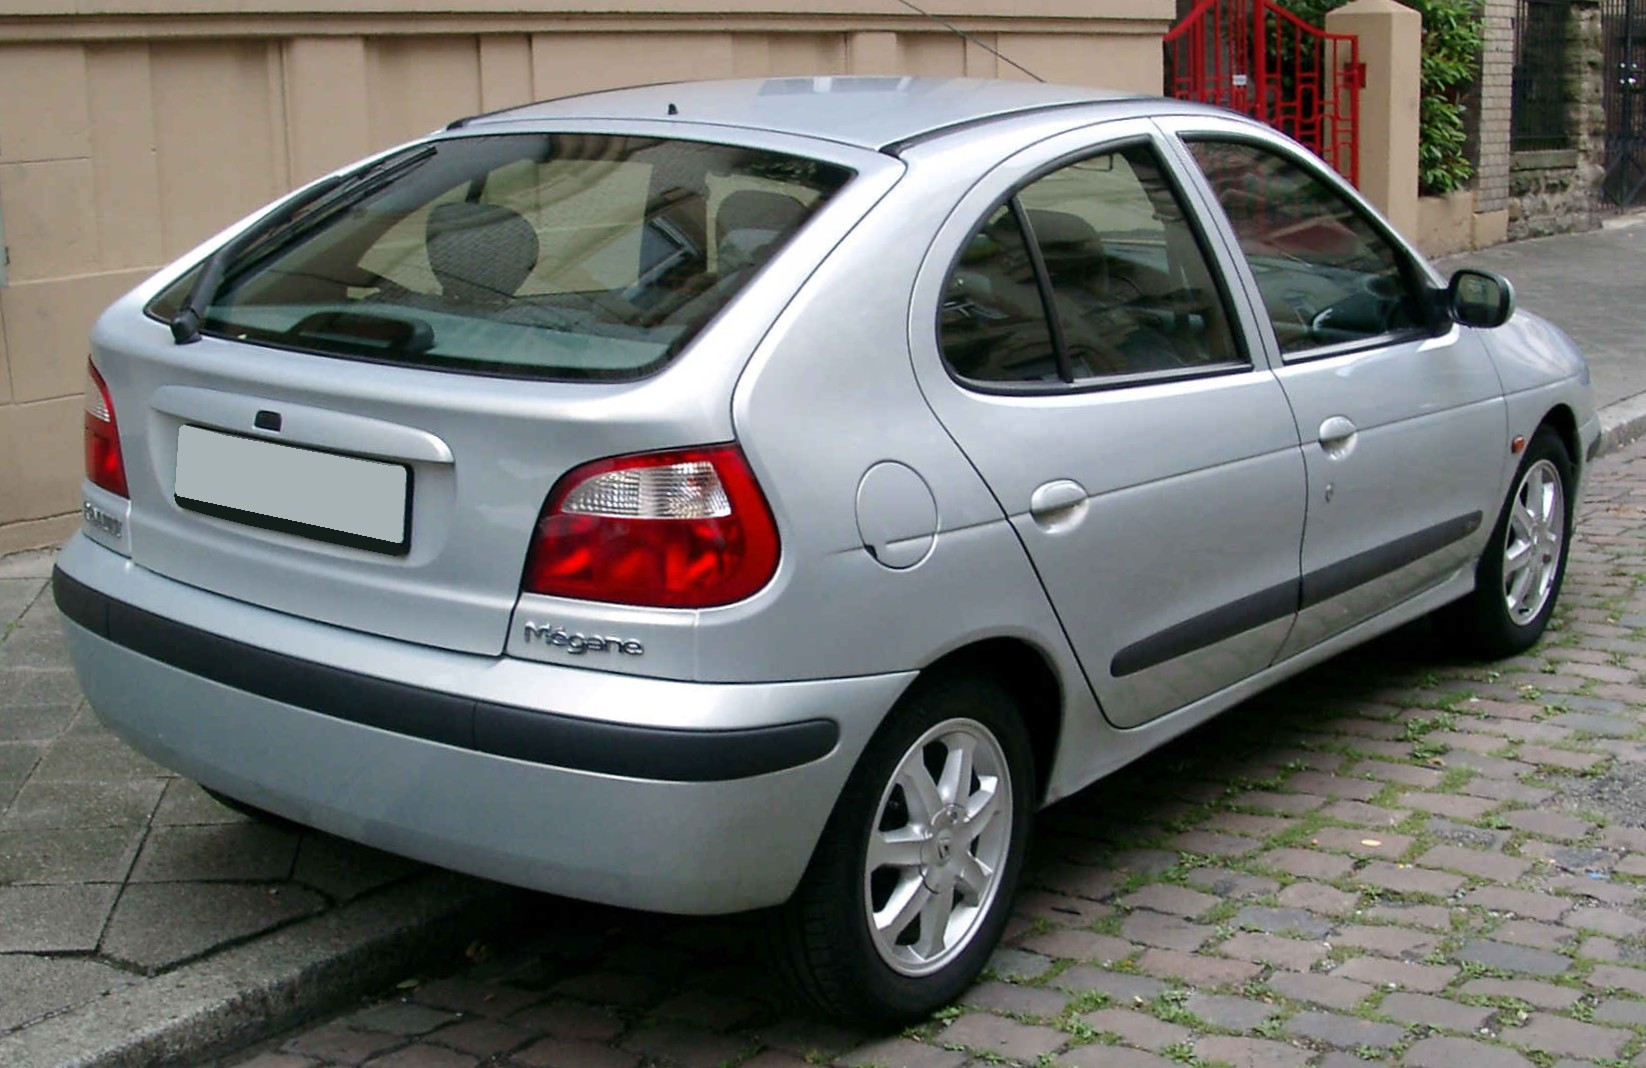 File Renault Megane Rear 20080820 Jpg Wikimedia Commons